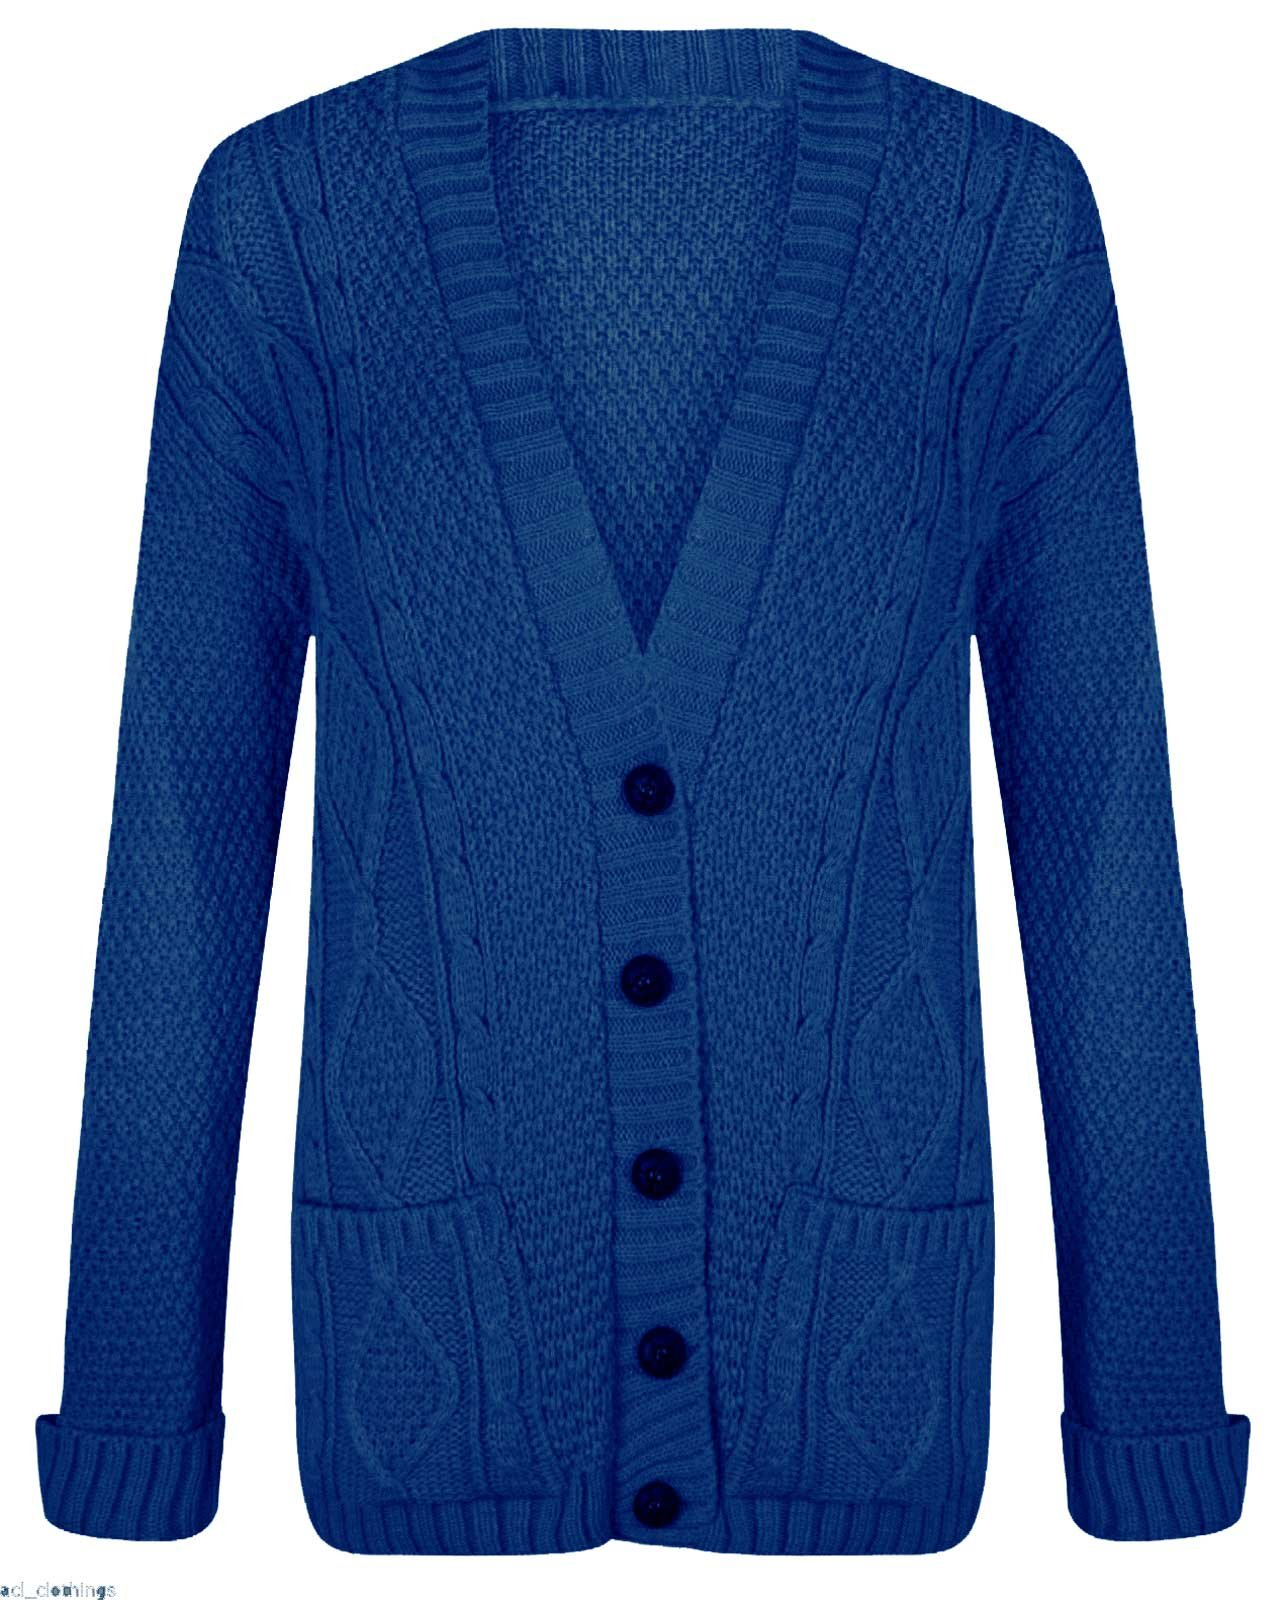 Thever Womens Ladies Long Sleeve Button Chunky Cable Knitted Cardigan Sz 8-22 (M/L(10-12), Royal Blue)